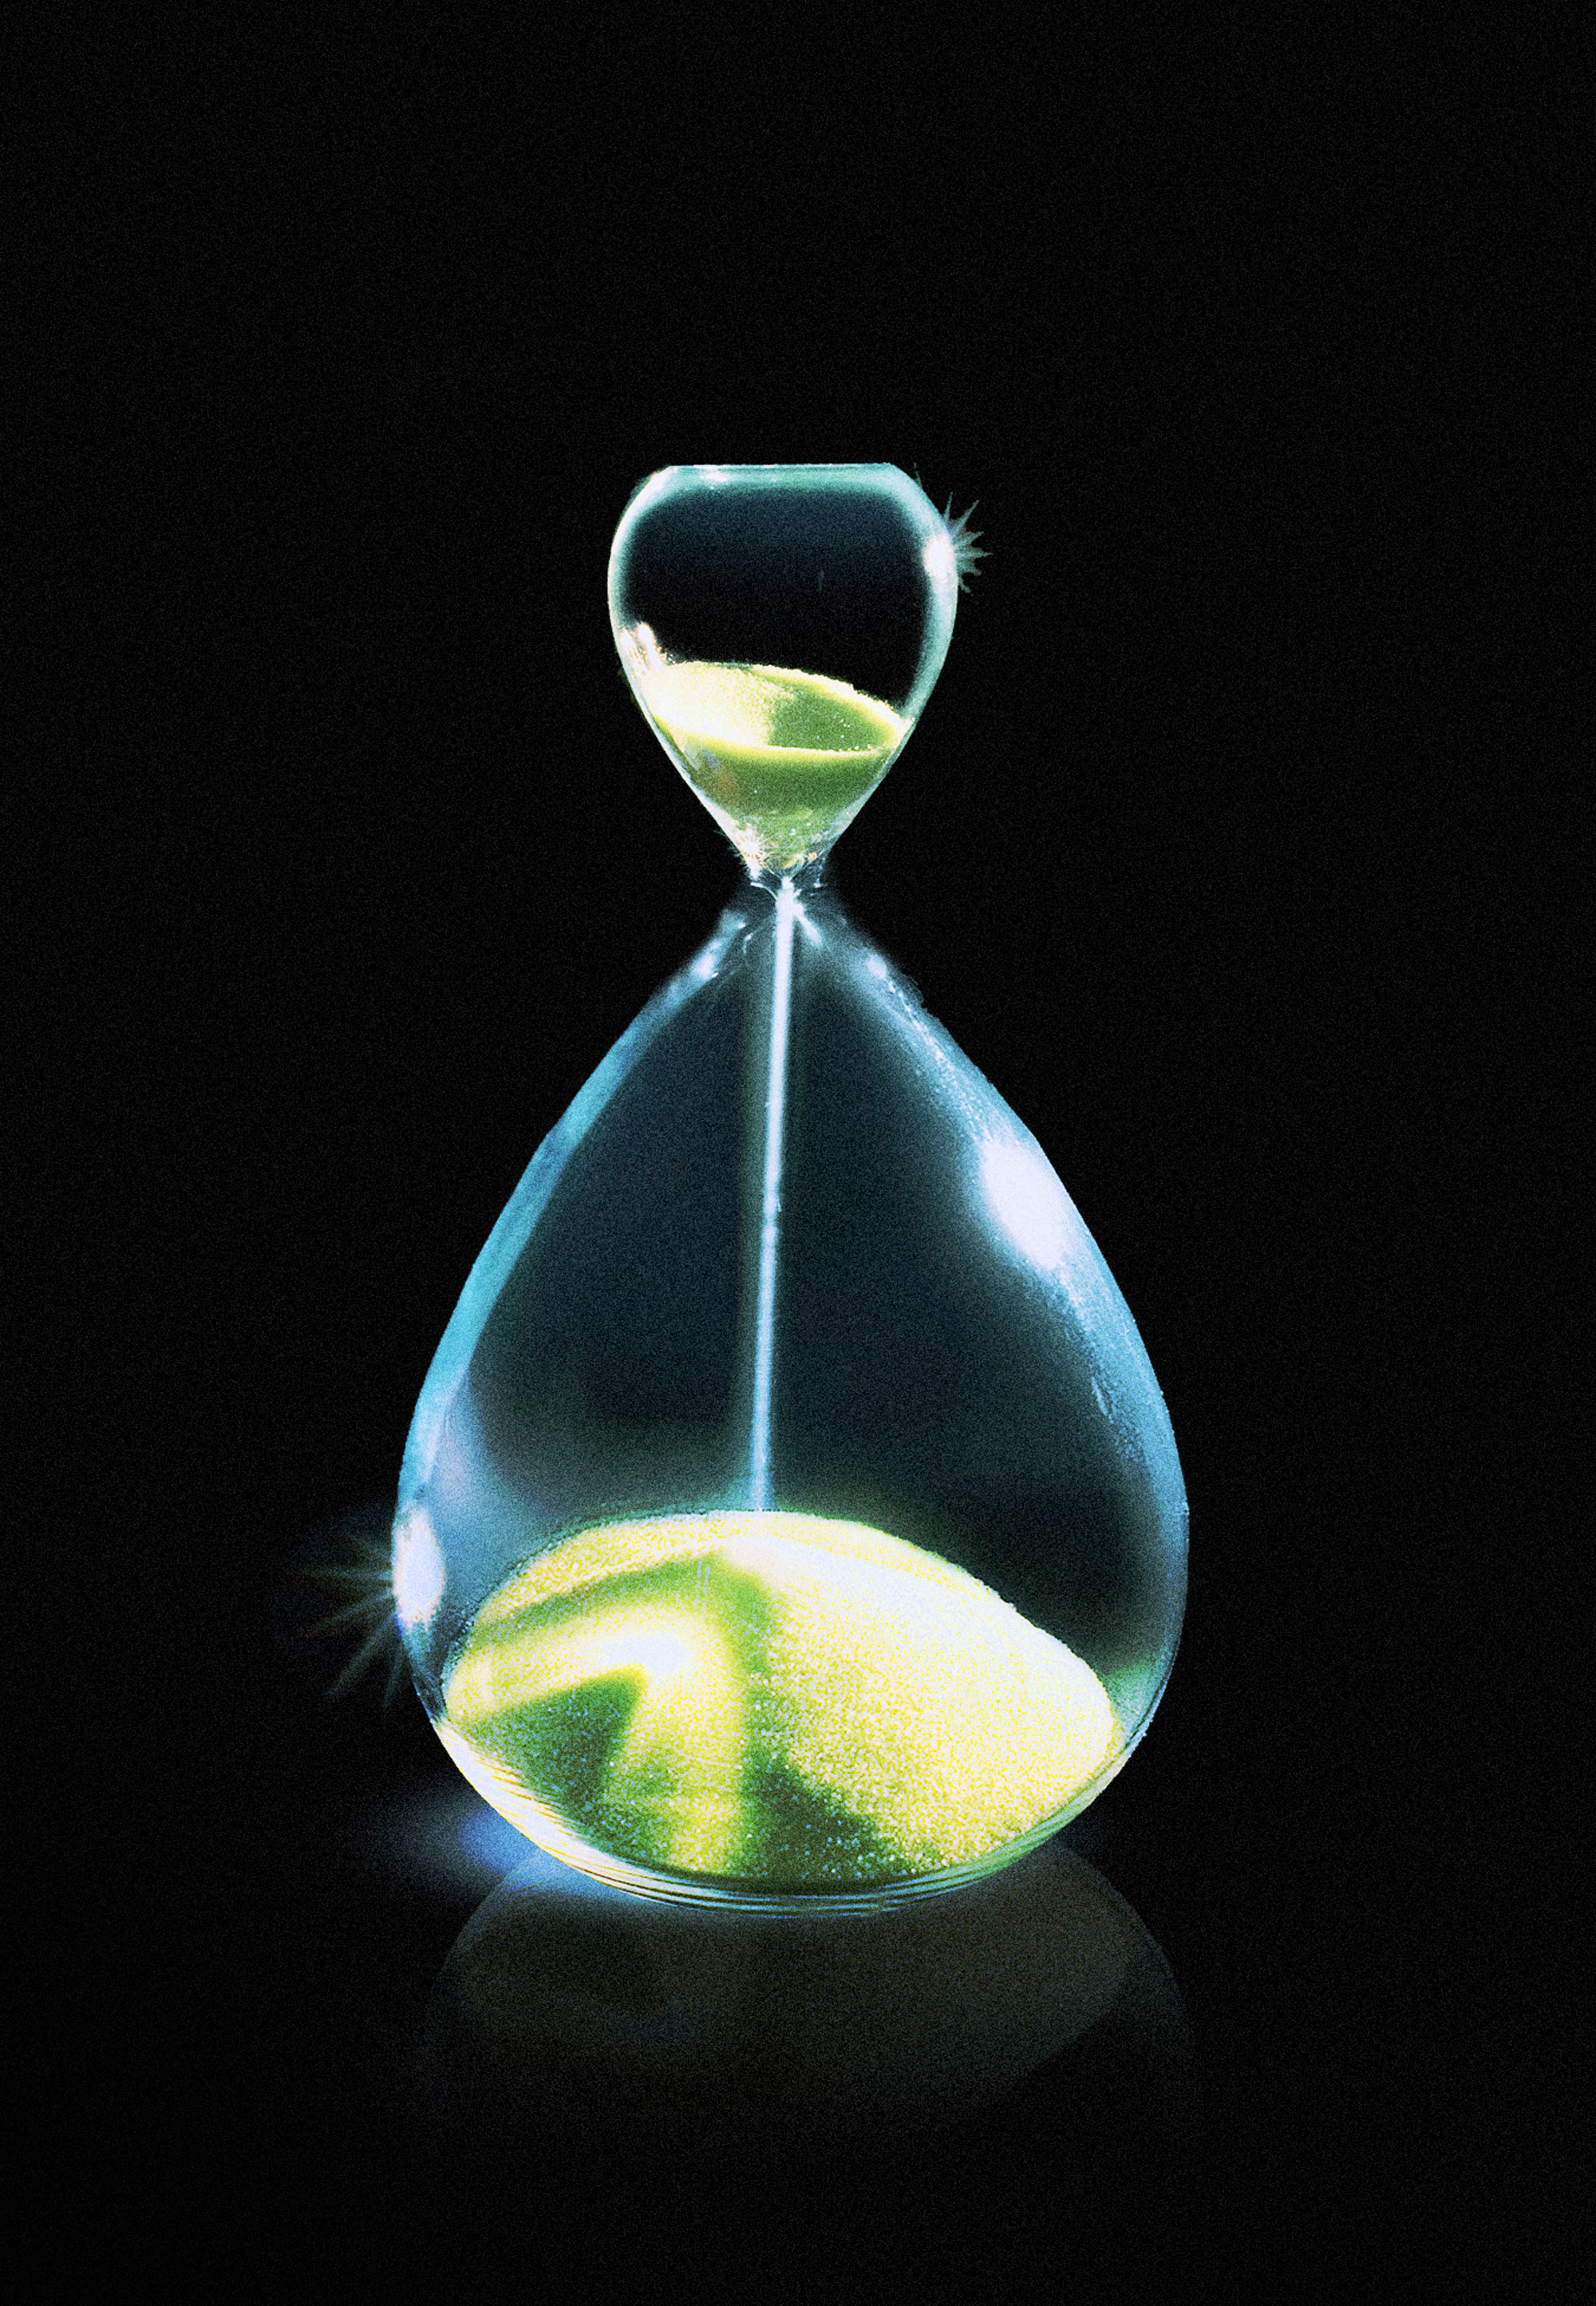 An image of an hourglass with a shrunken top half and enlarged bottom half